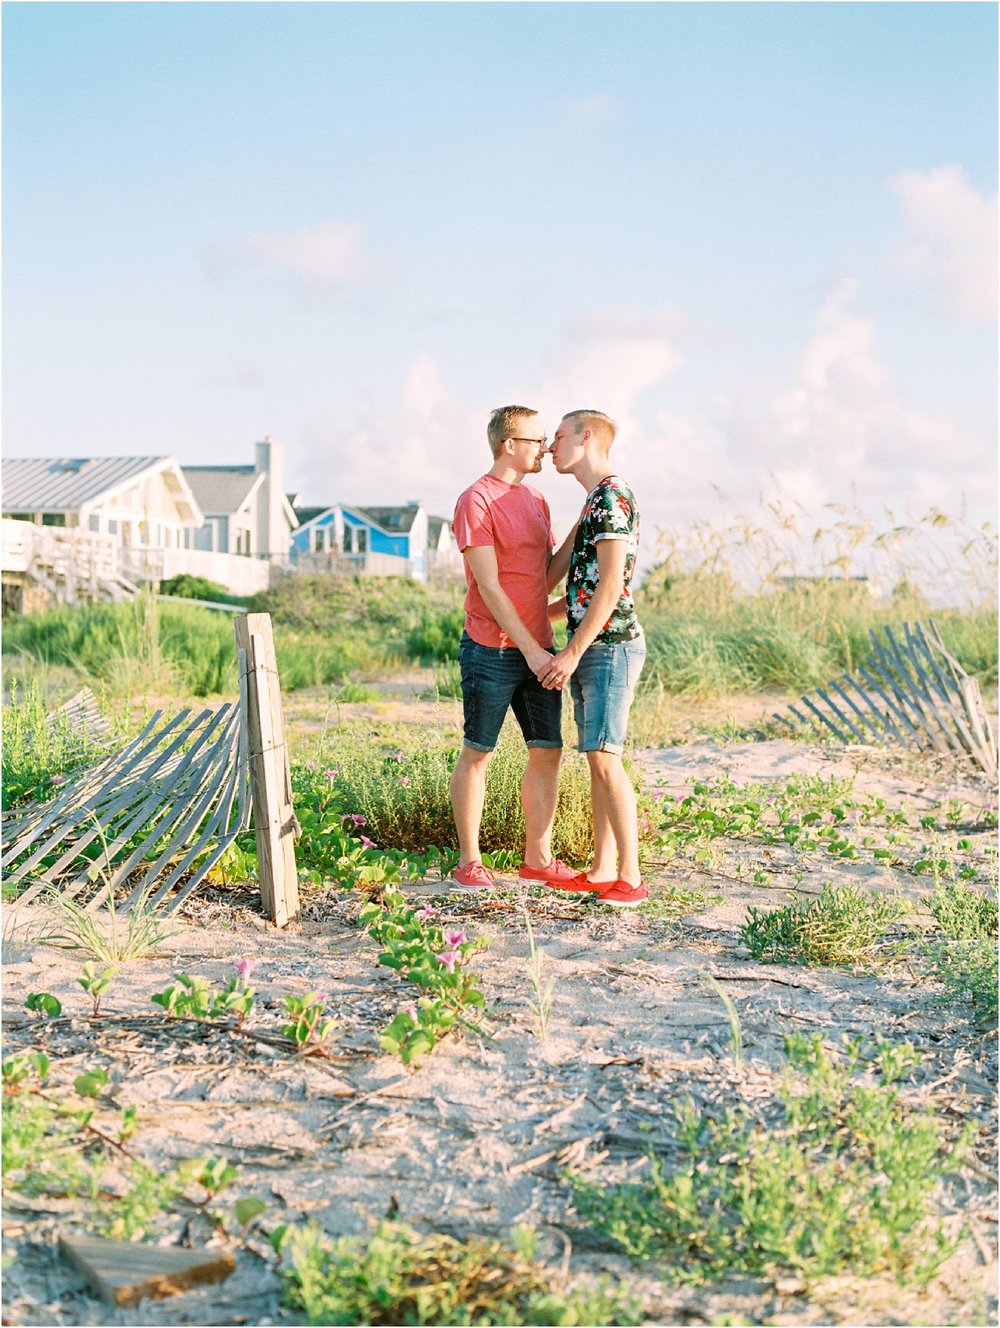 Lisa Silva Photography- Ponte Vedra Beach, St. Augustine and Jacksonville, Florida Fine Art Film Wedding Photography- Sunrise Engagement Shoot at  Vilano Beach_0067.jpg